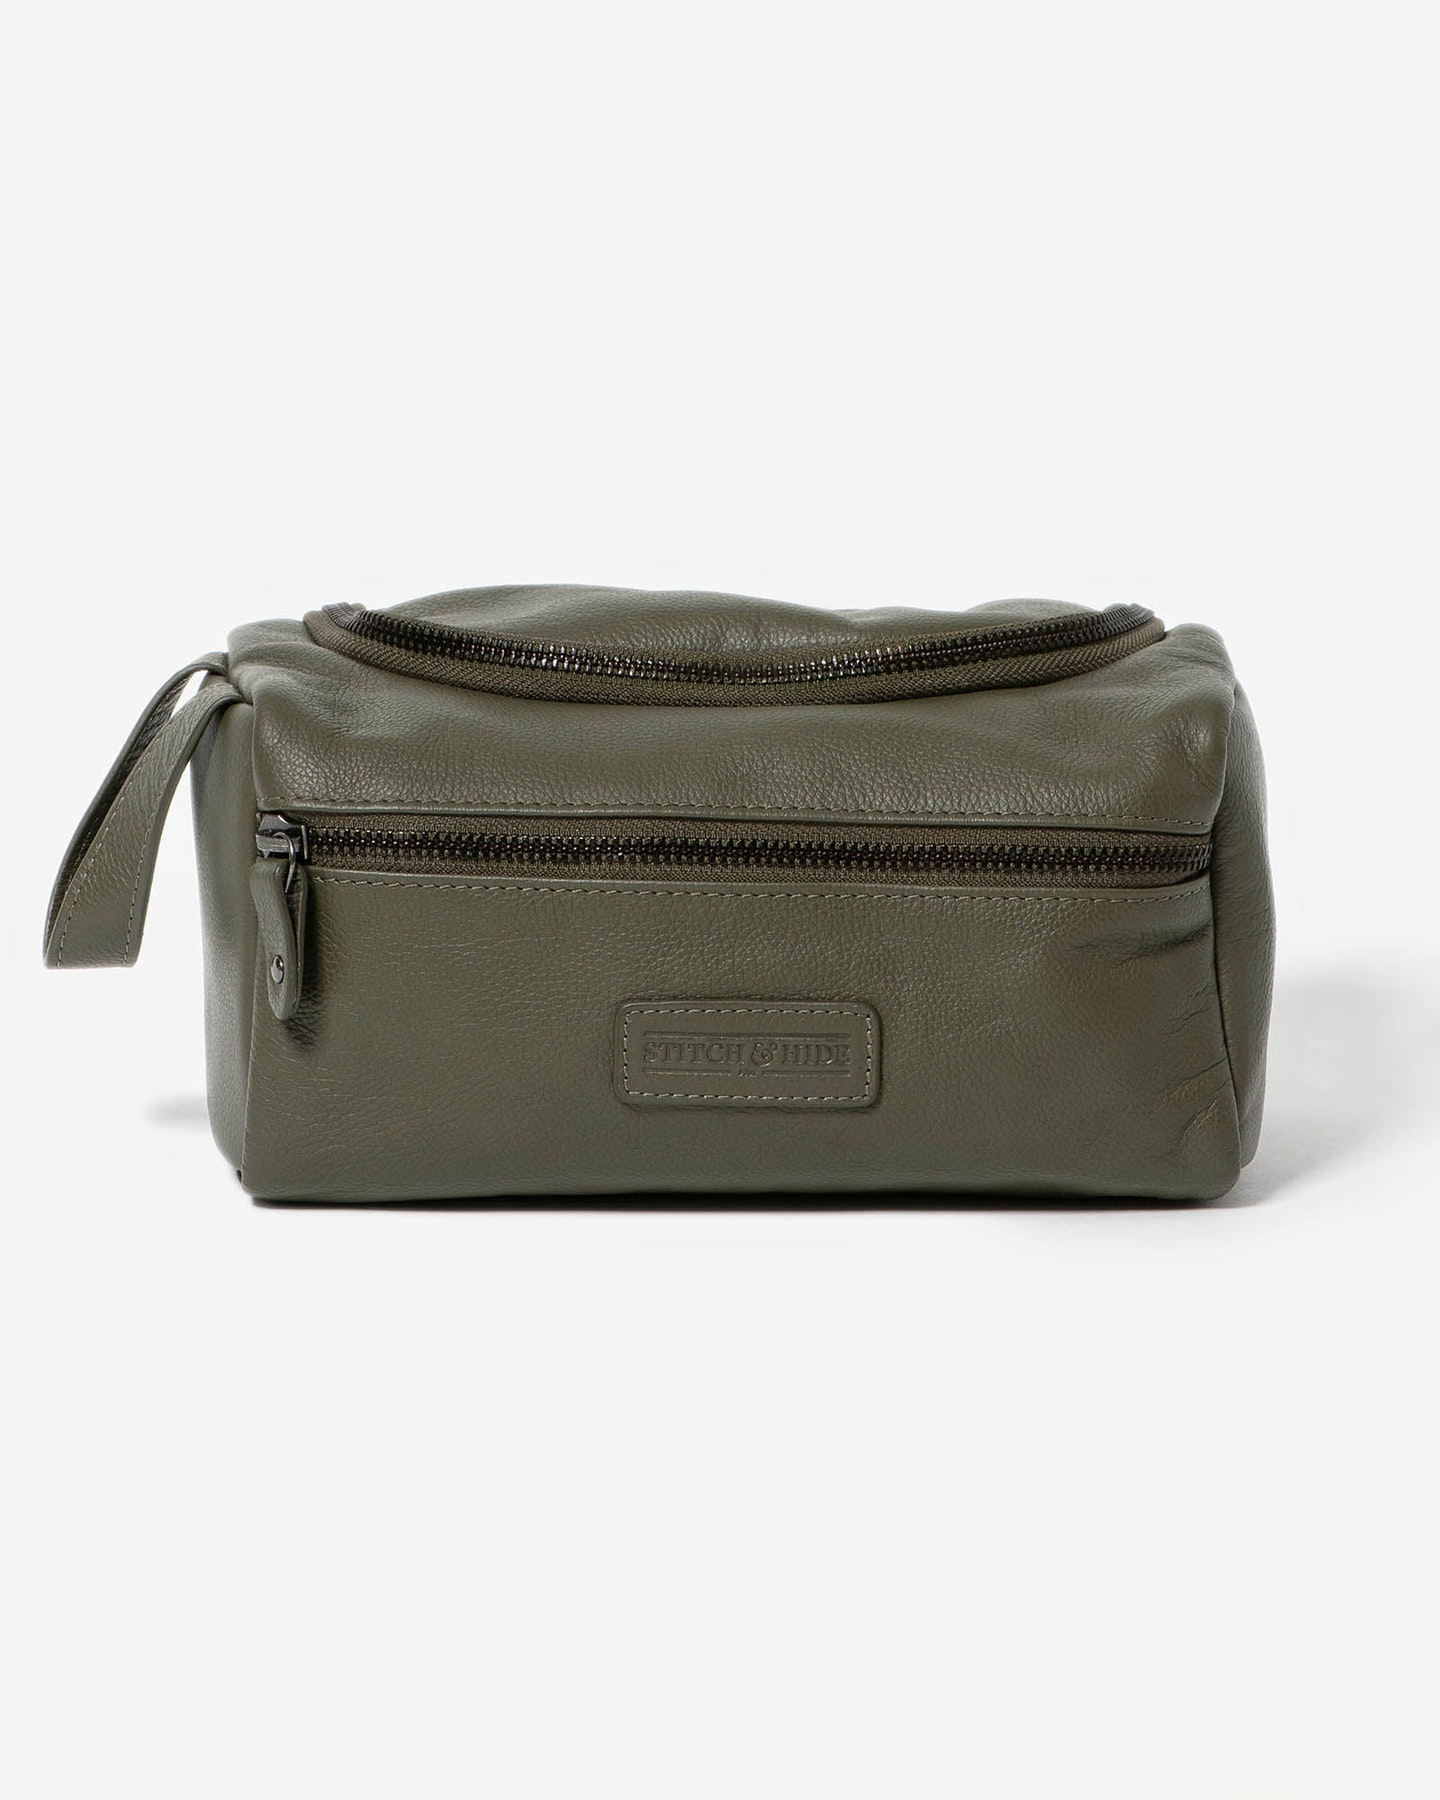 Stitch And Hide Jett Toiletry Bag Olive Olive